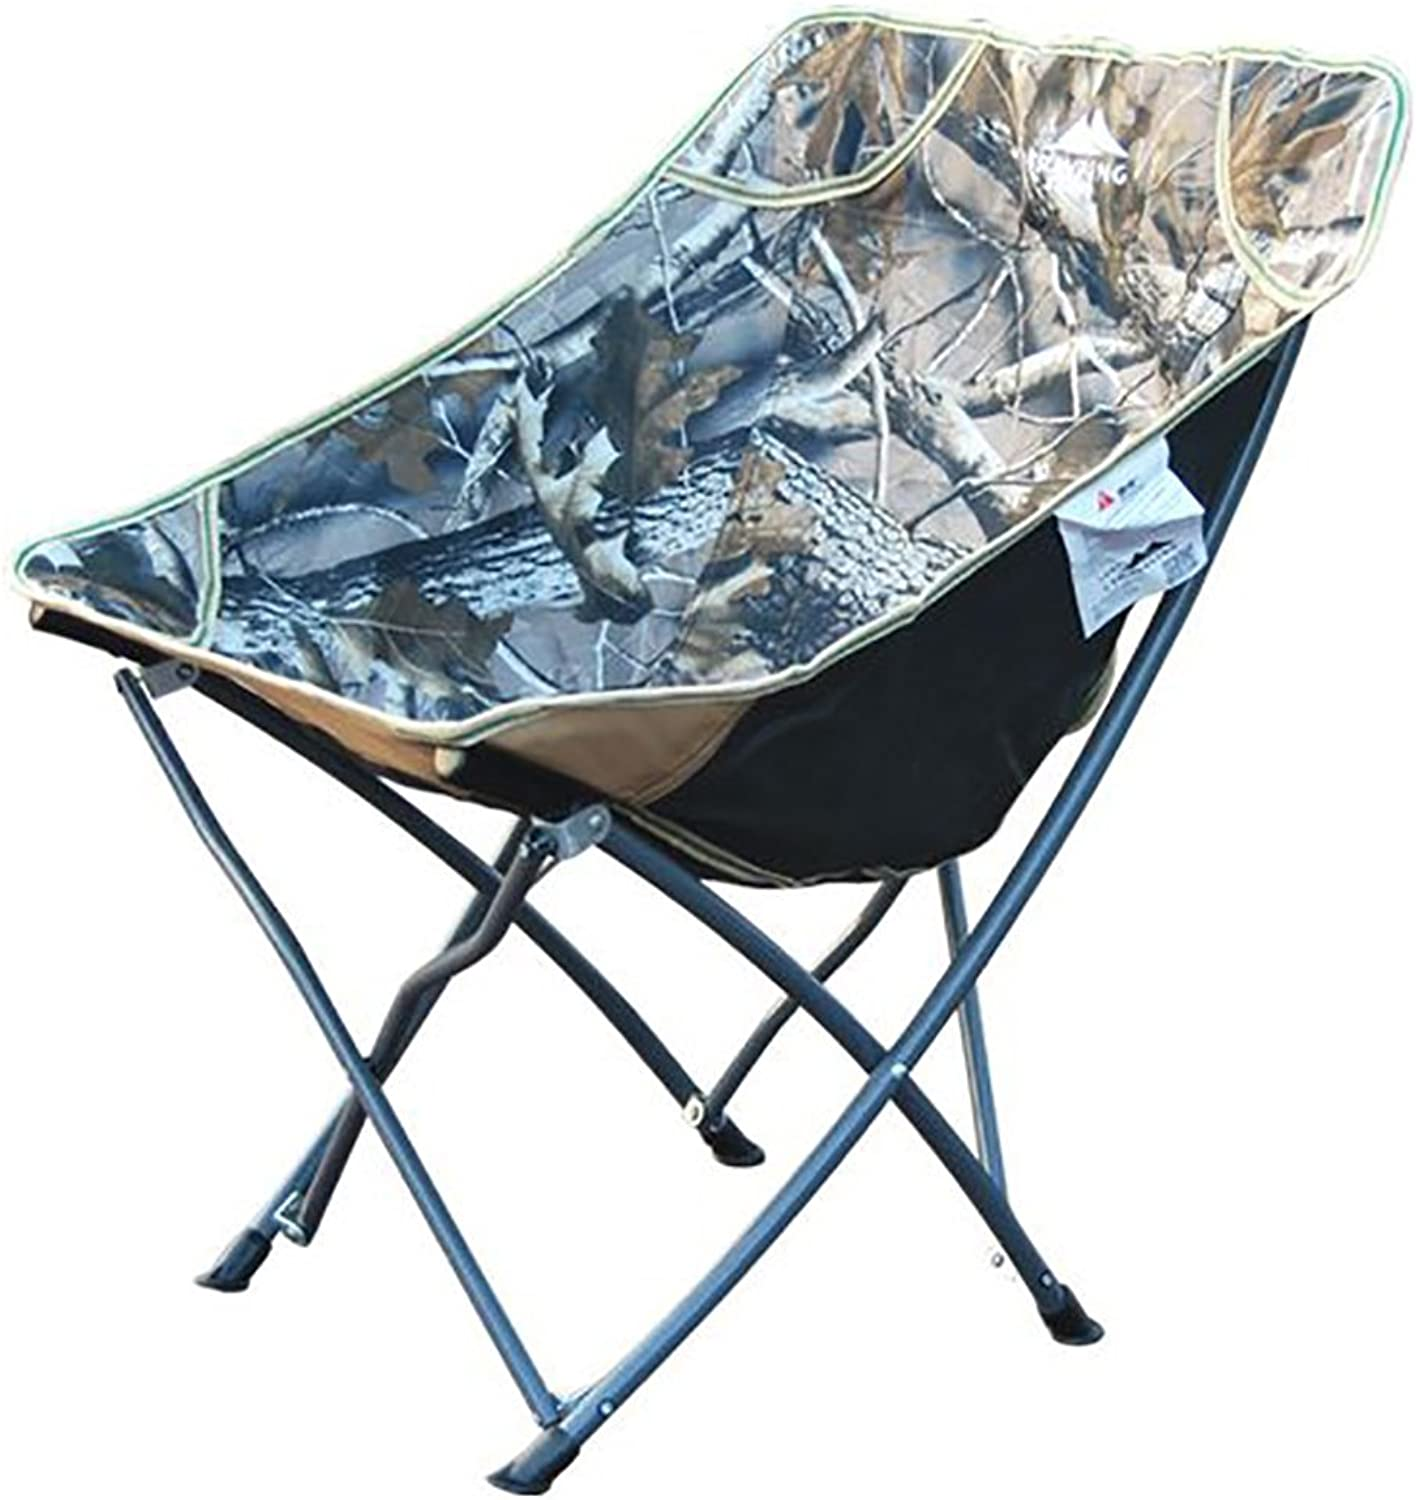 Portable Folding Chairs, Strong Bearing Capacity, Durable and Stable